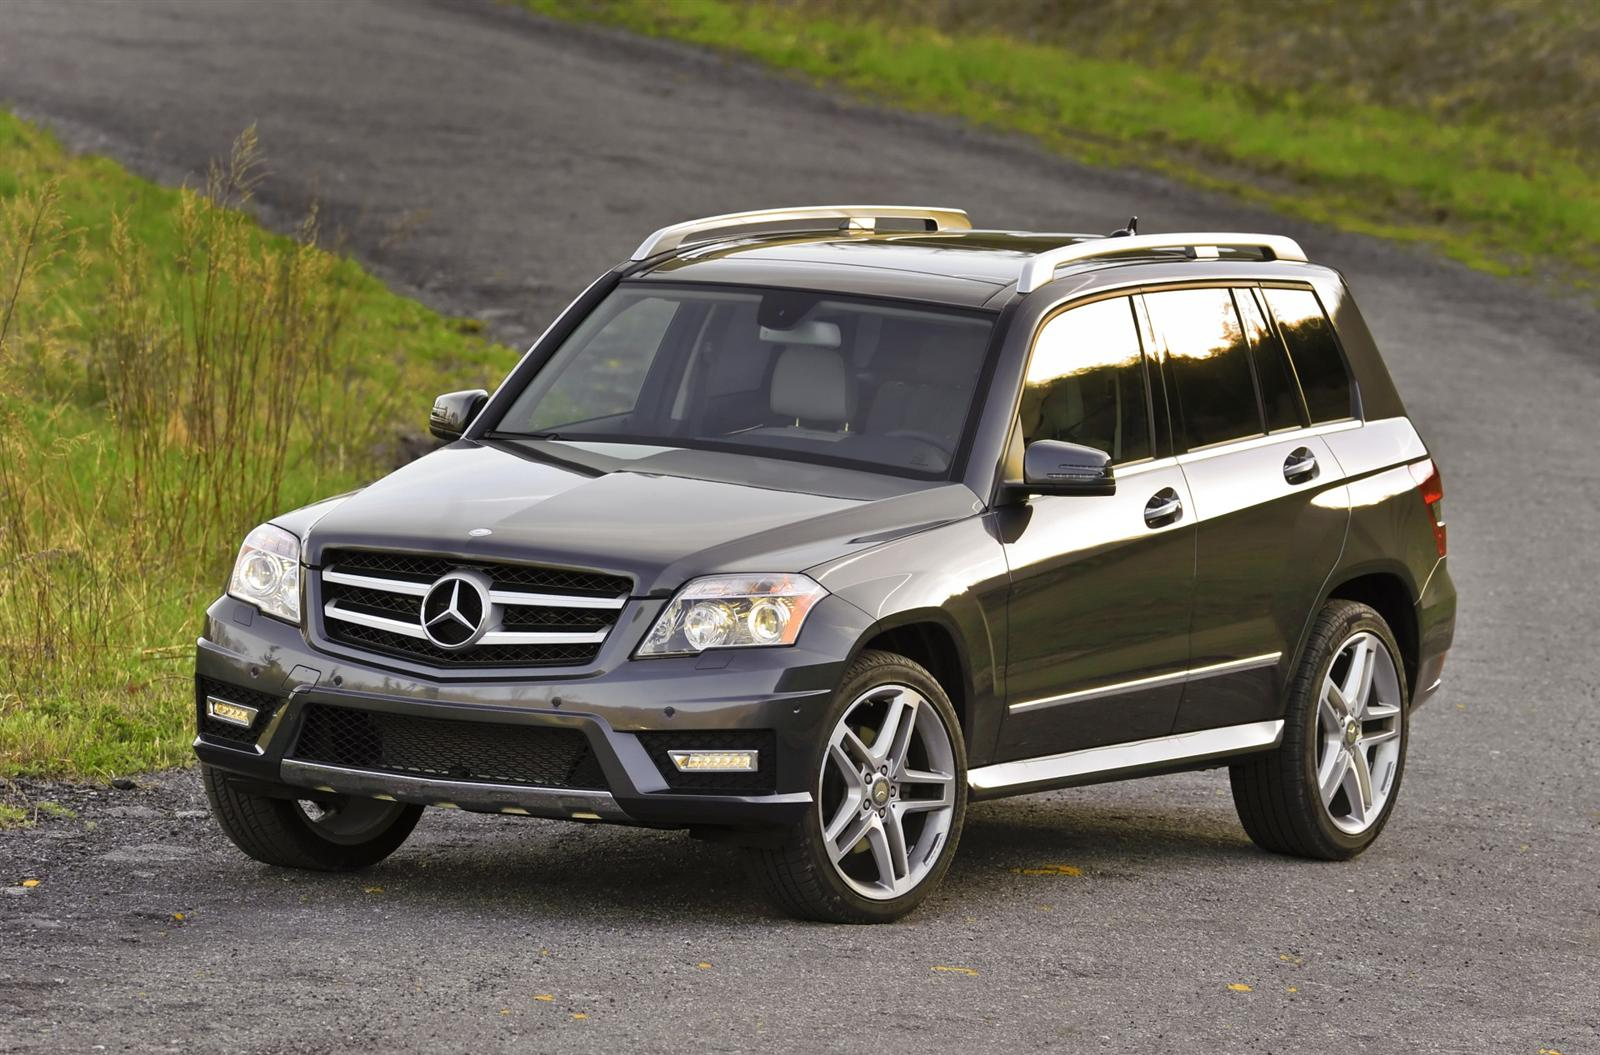 2011 mercedes benz glk class image 15 for Mercedes benz 2011